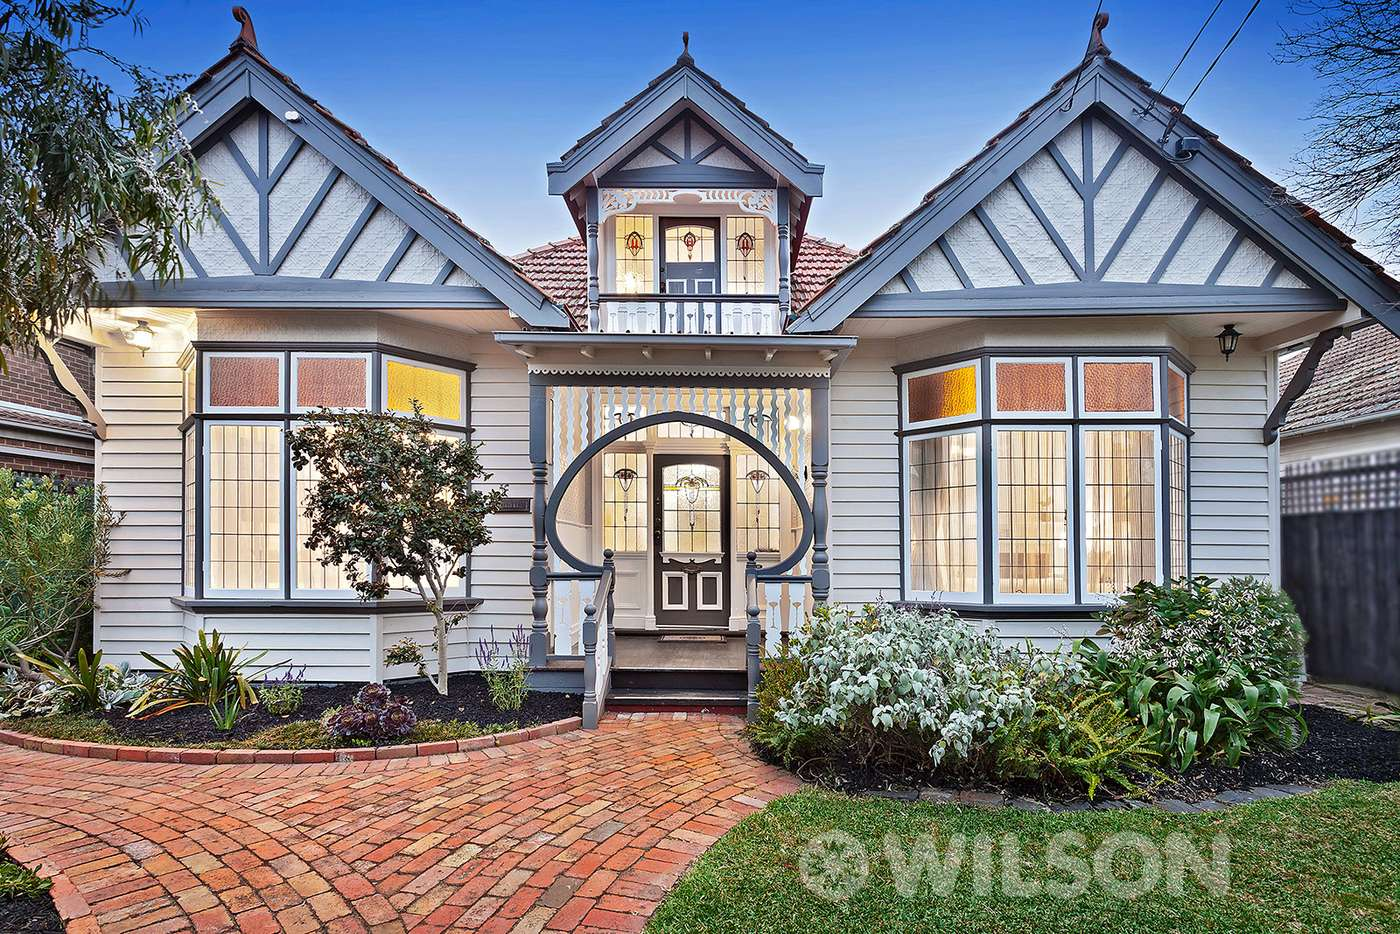 Main view of Homely house listing, 23 Bailey Avenue, St Kilda East, VIC 3183